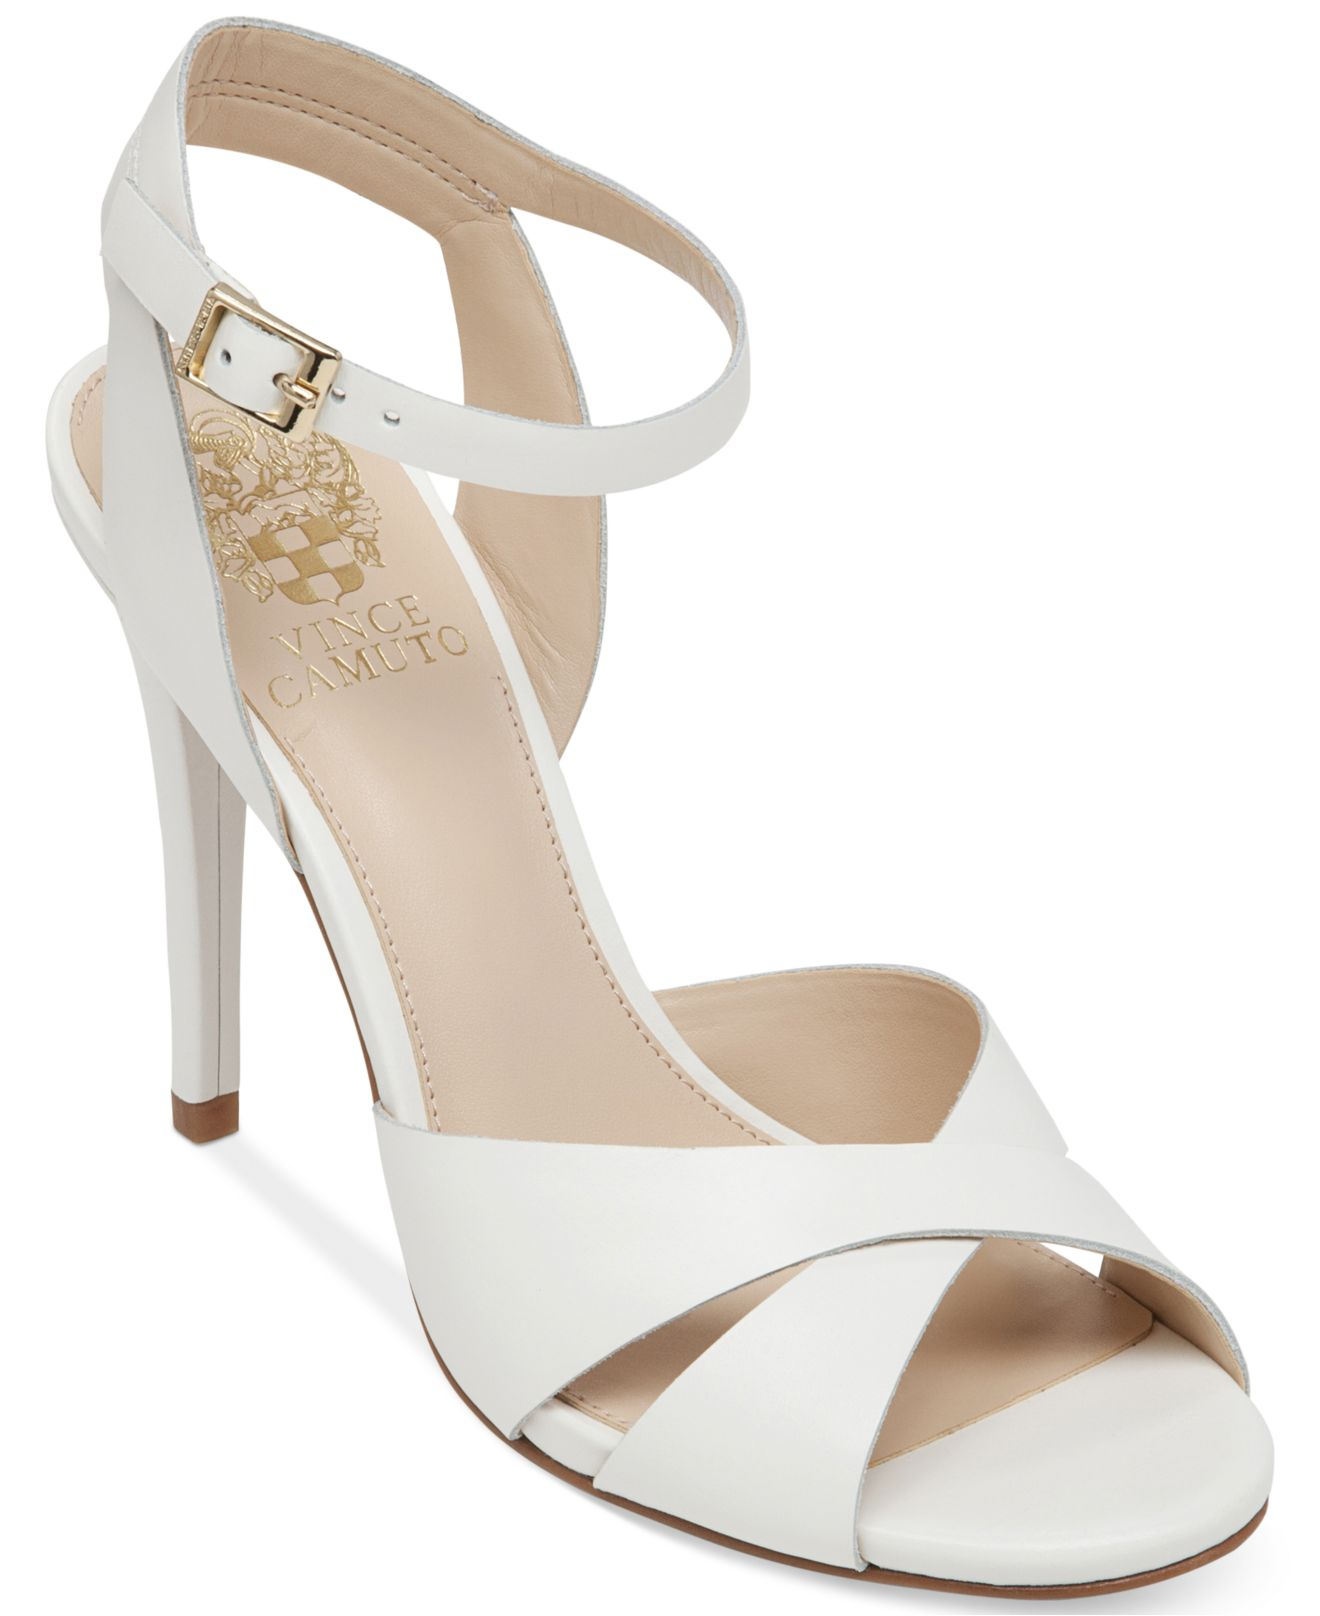 Vince Camuto Soliss High Heel Sandals